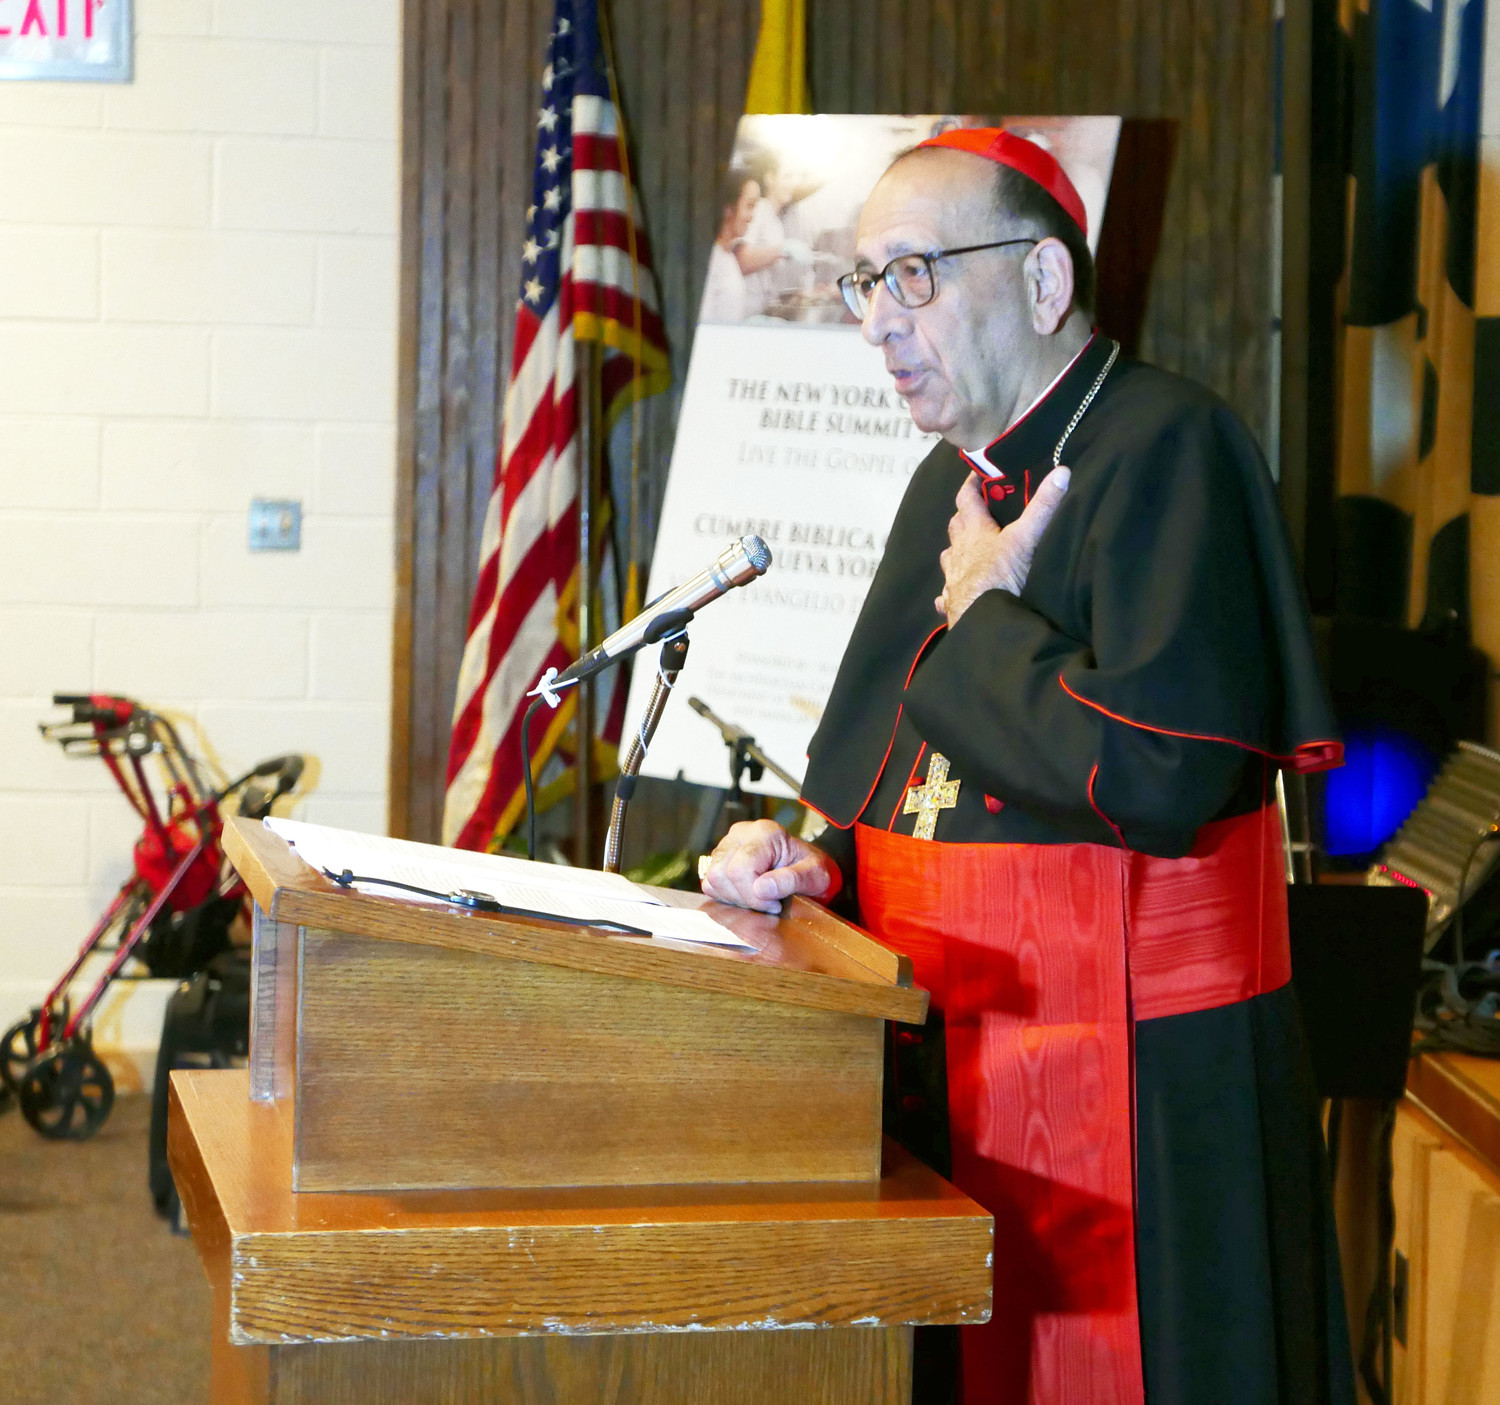 Cardinal Juan José Omella of Barcelona, Spain, bottom right, presented the keynote in Spanish.